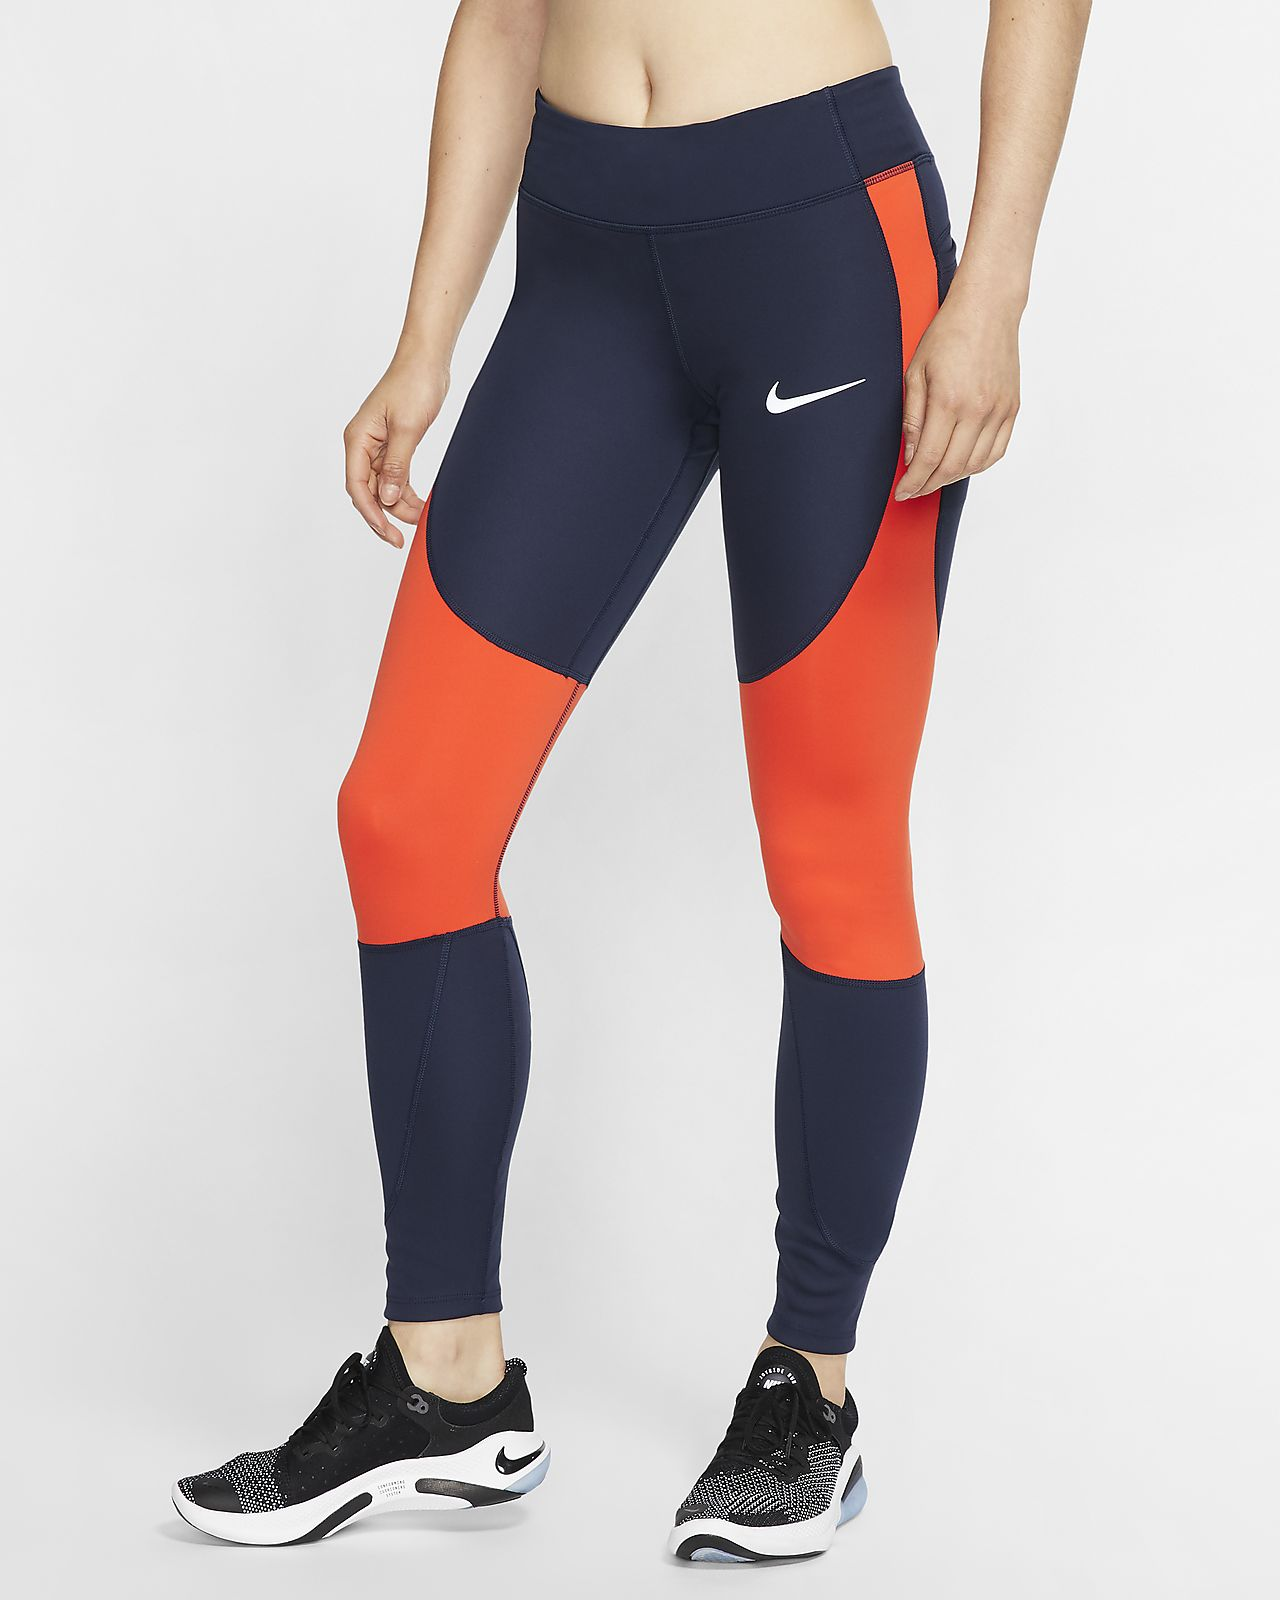 Tights de running Nike Epic Lux Repel para mulher